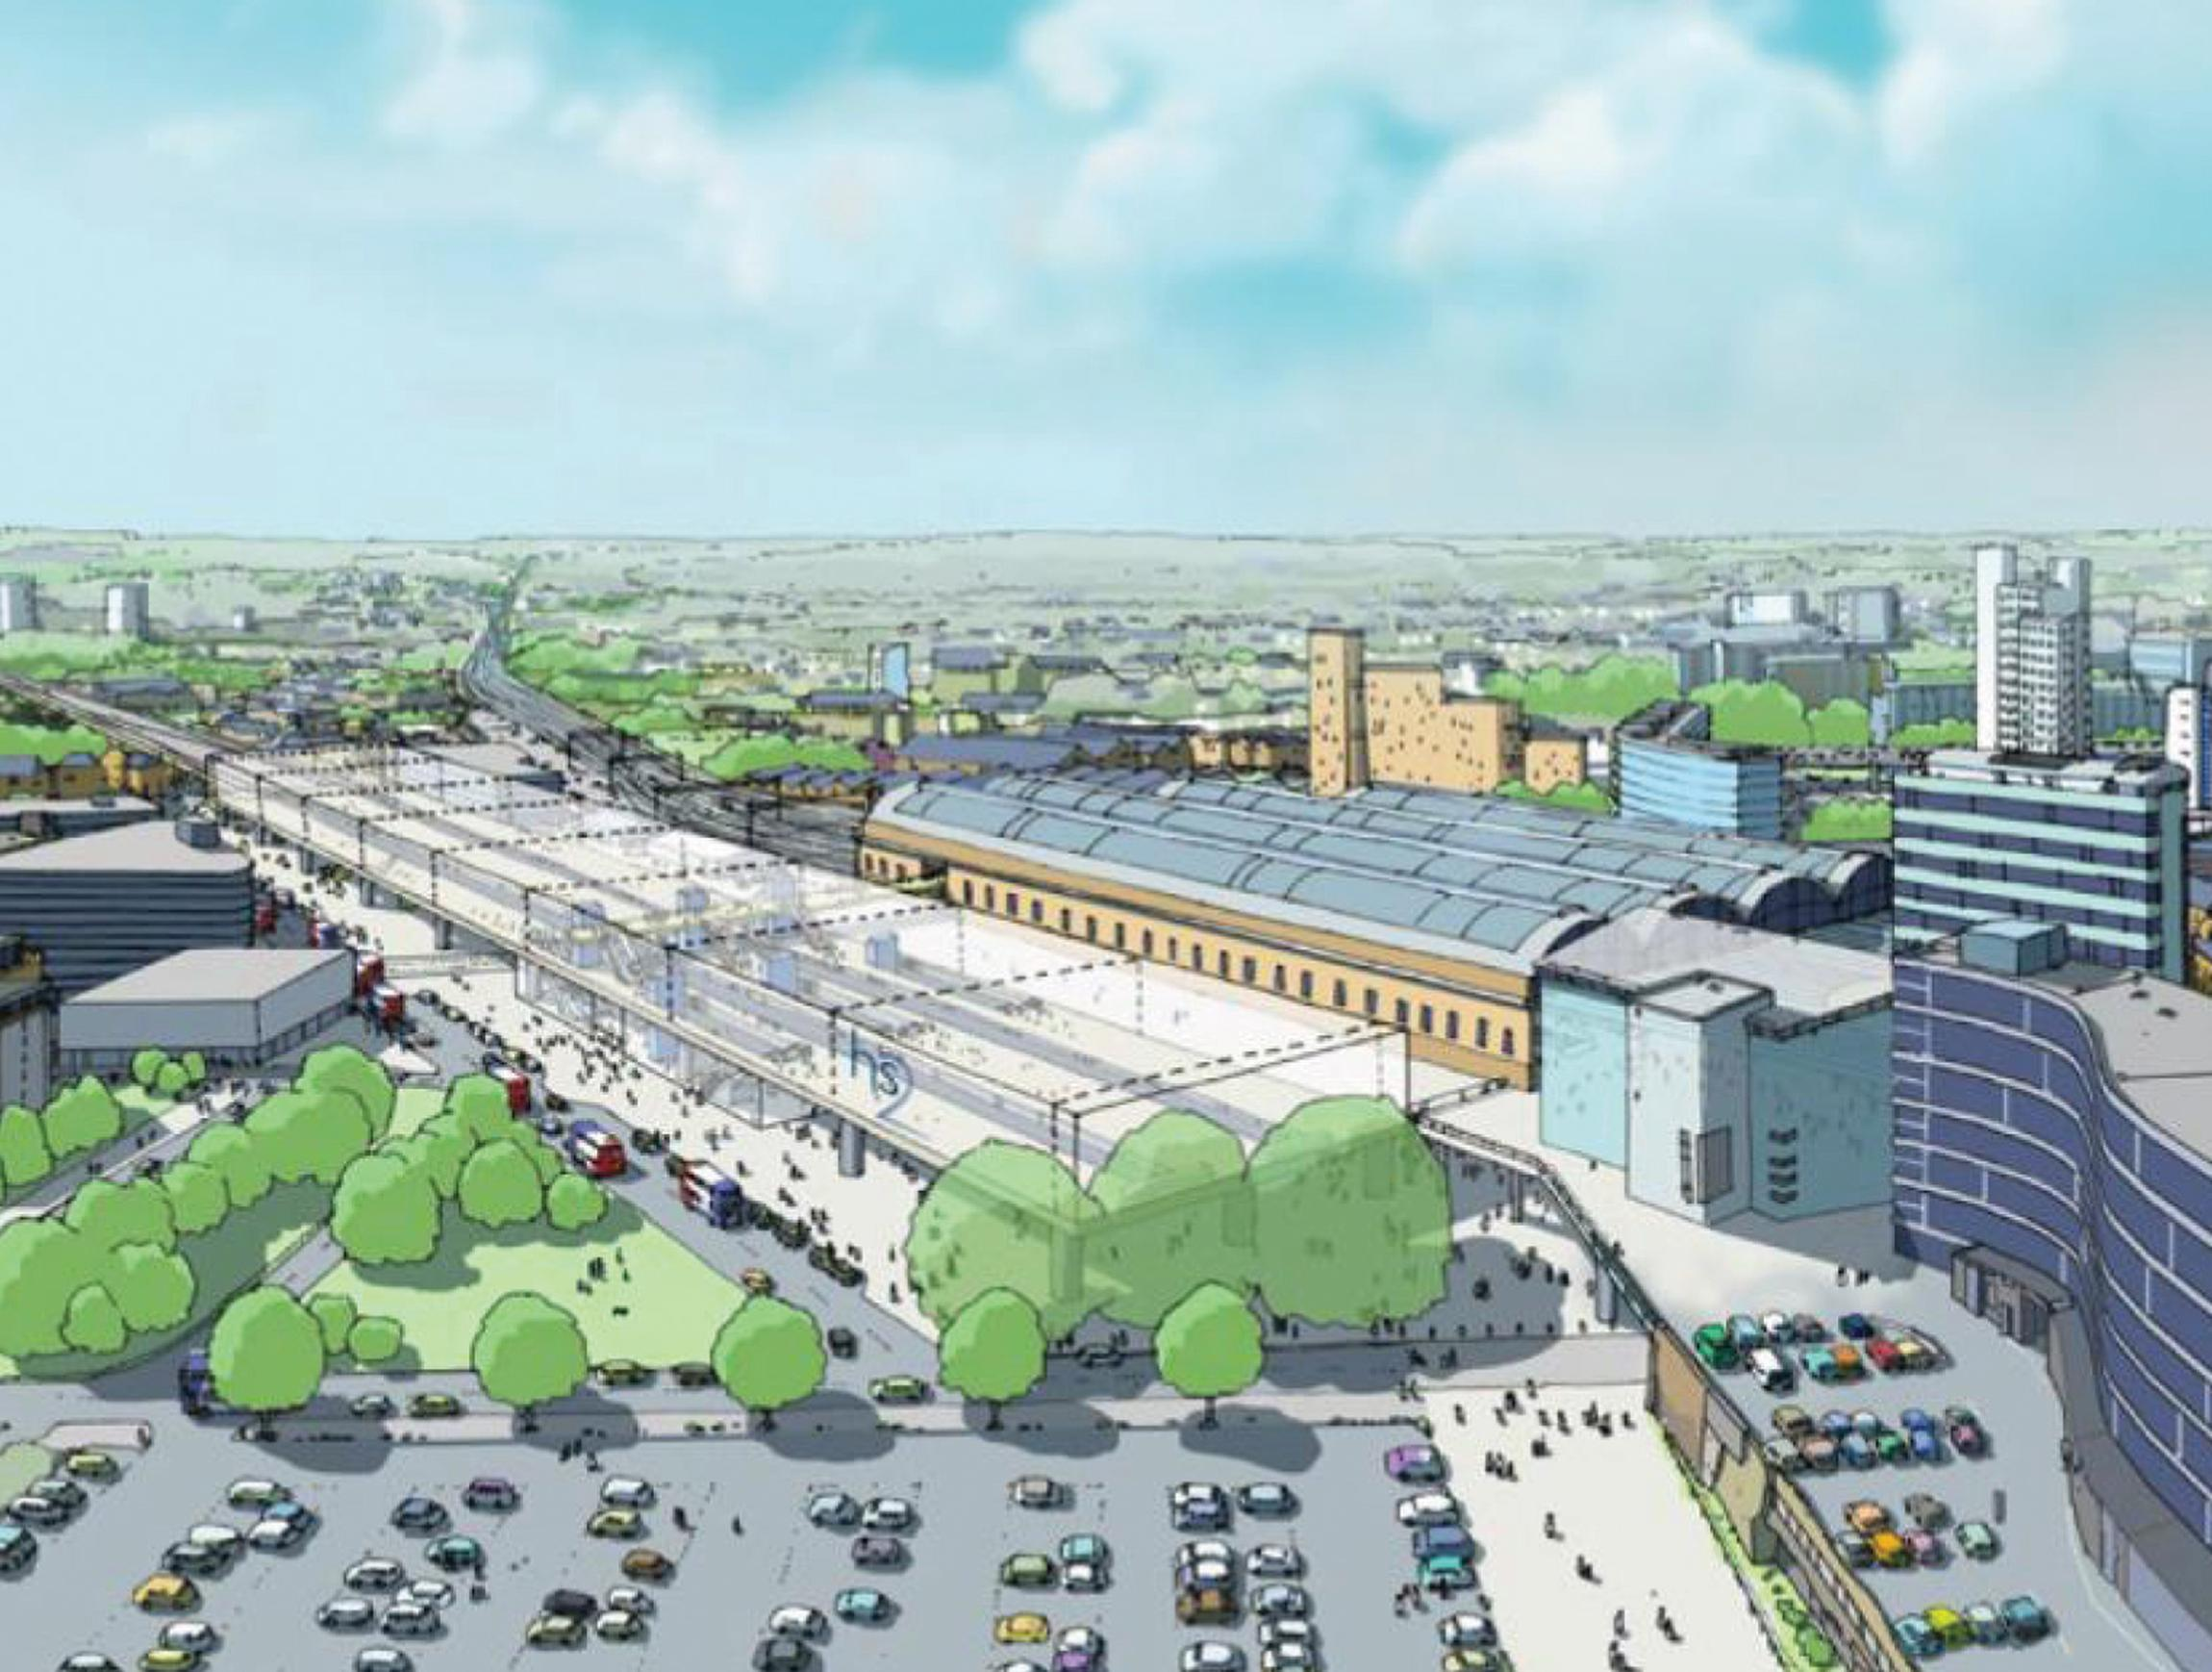 Manchester Piccadilly HS2 plan unacceptable